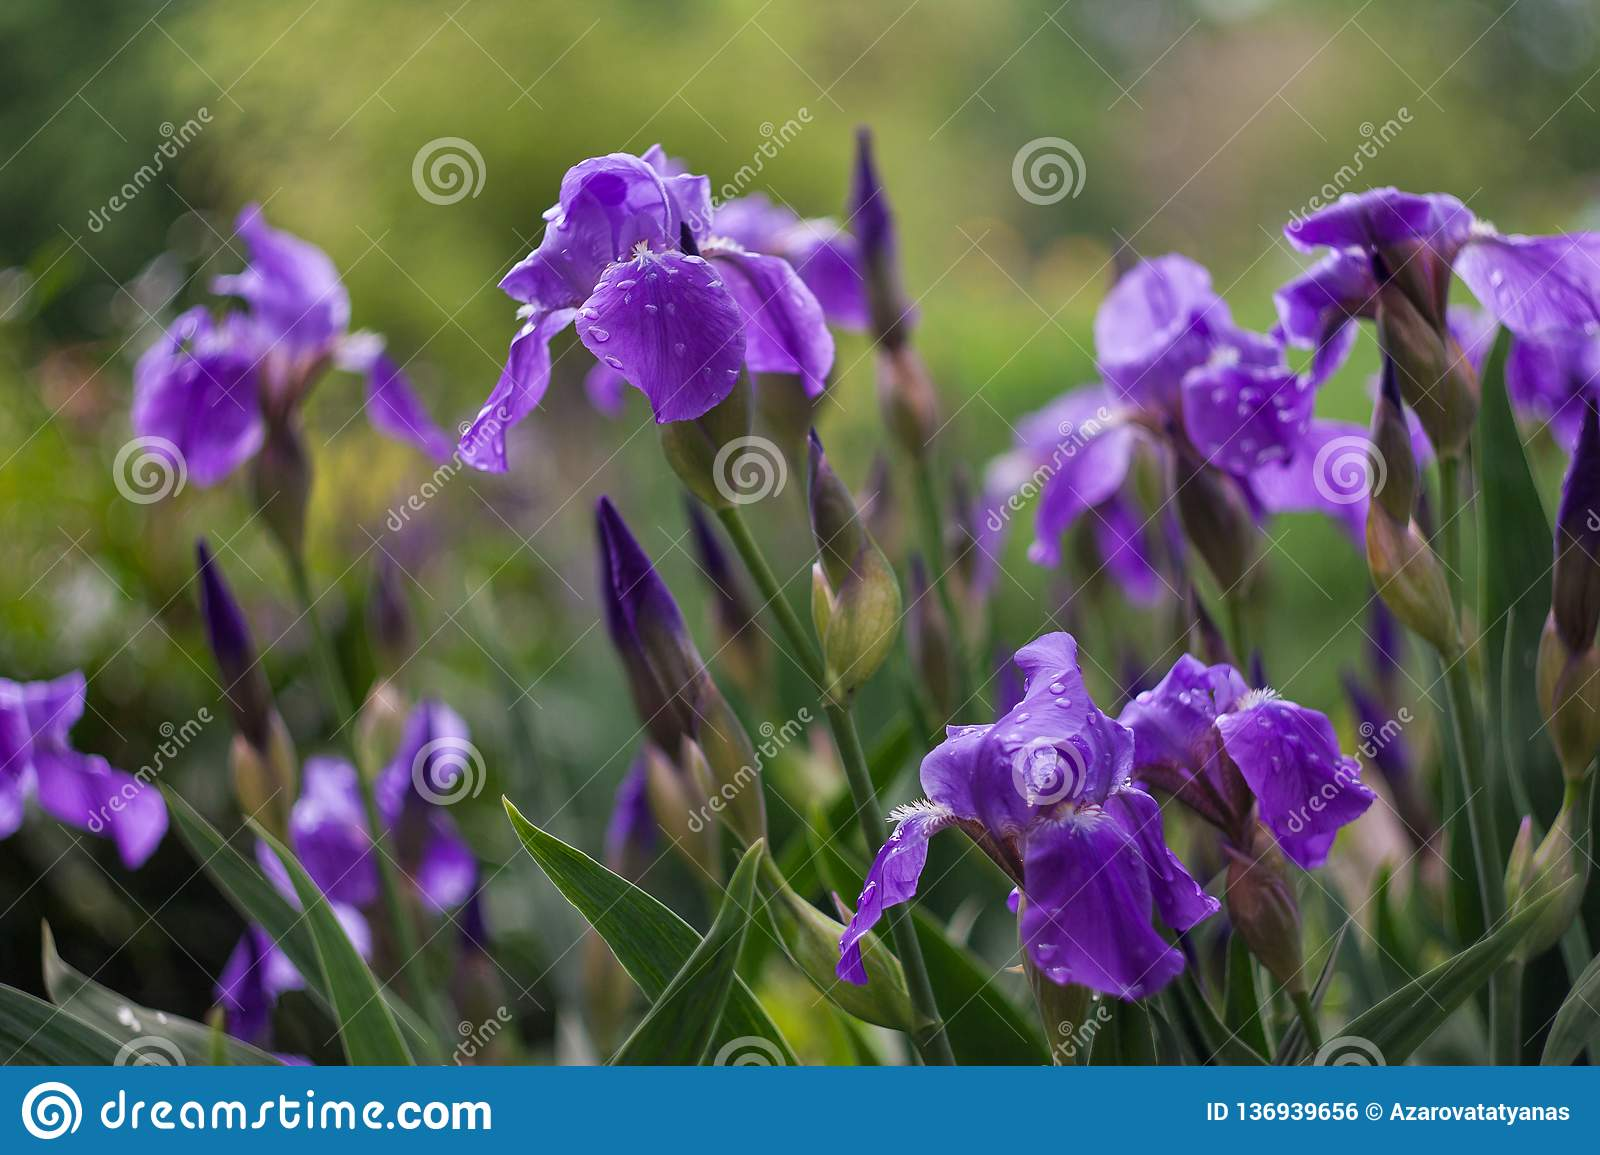 Purple irises bloom in a green garden in spring